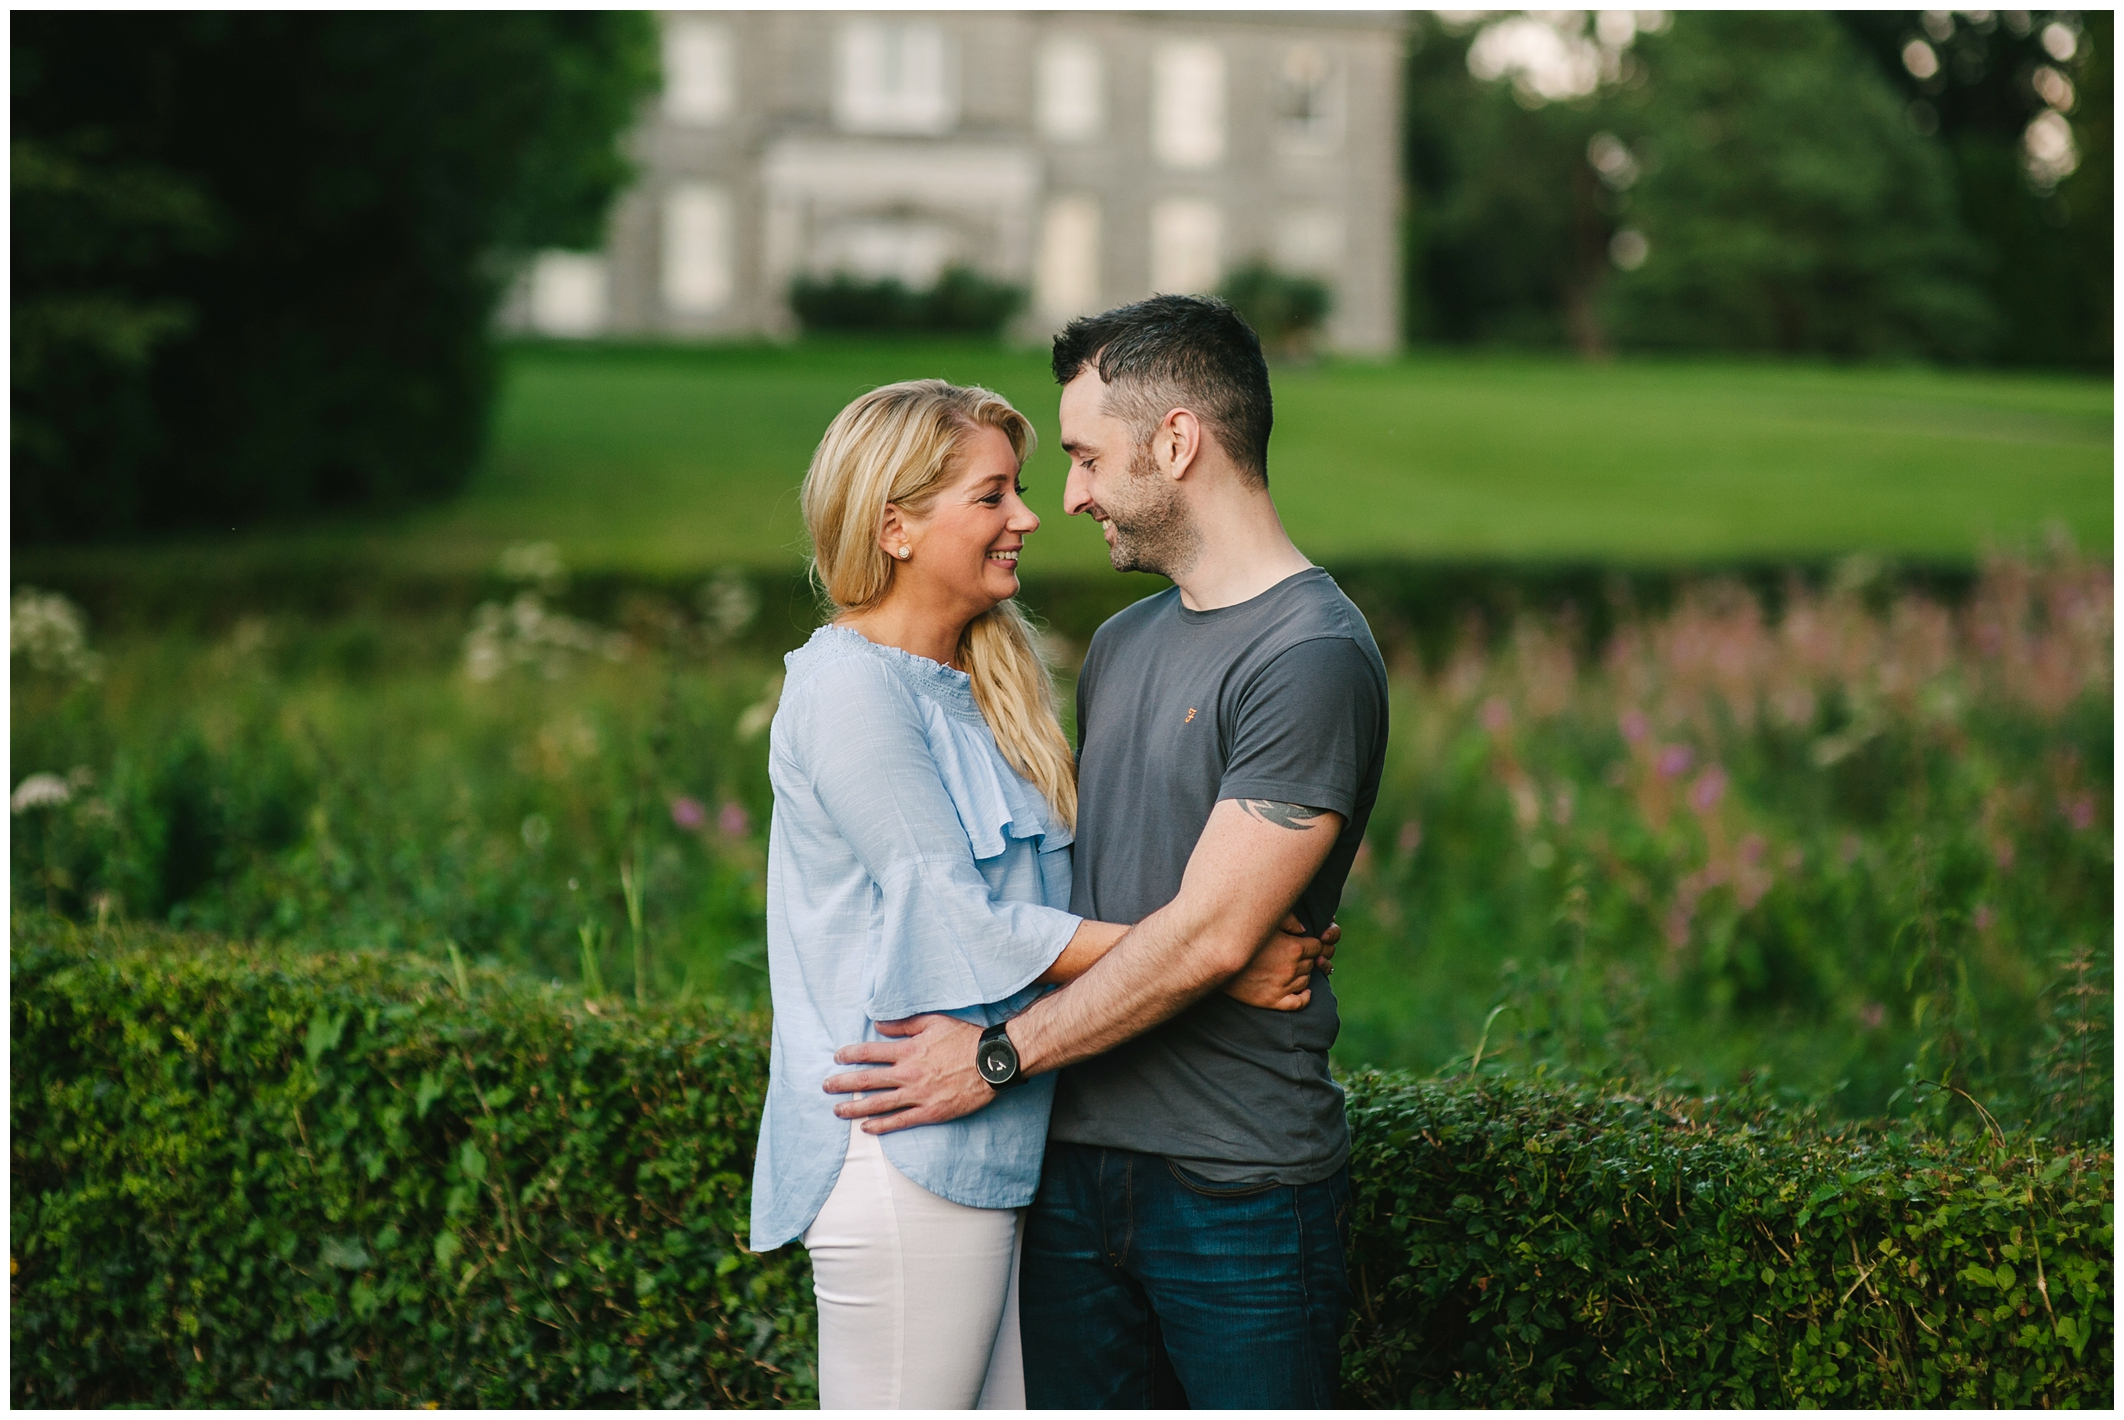 louise_keith_pre_wedding_armagh_jude_browne_photography_0004.jpg